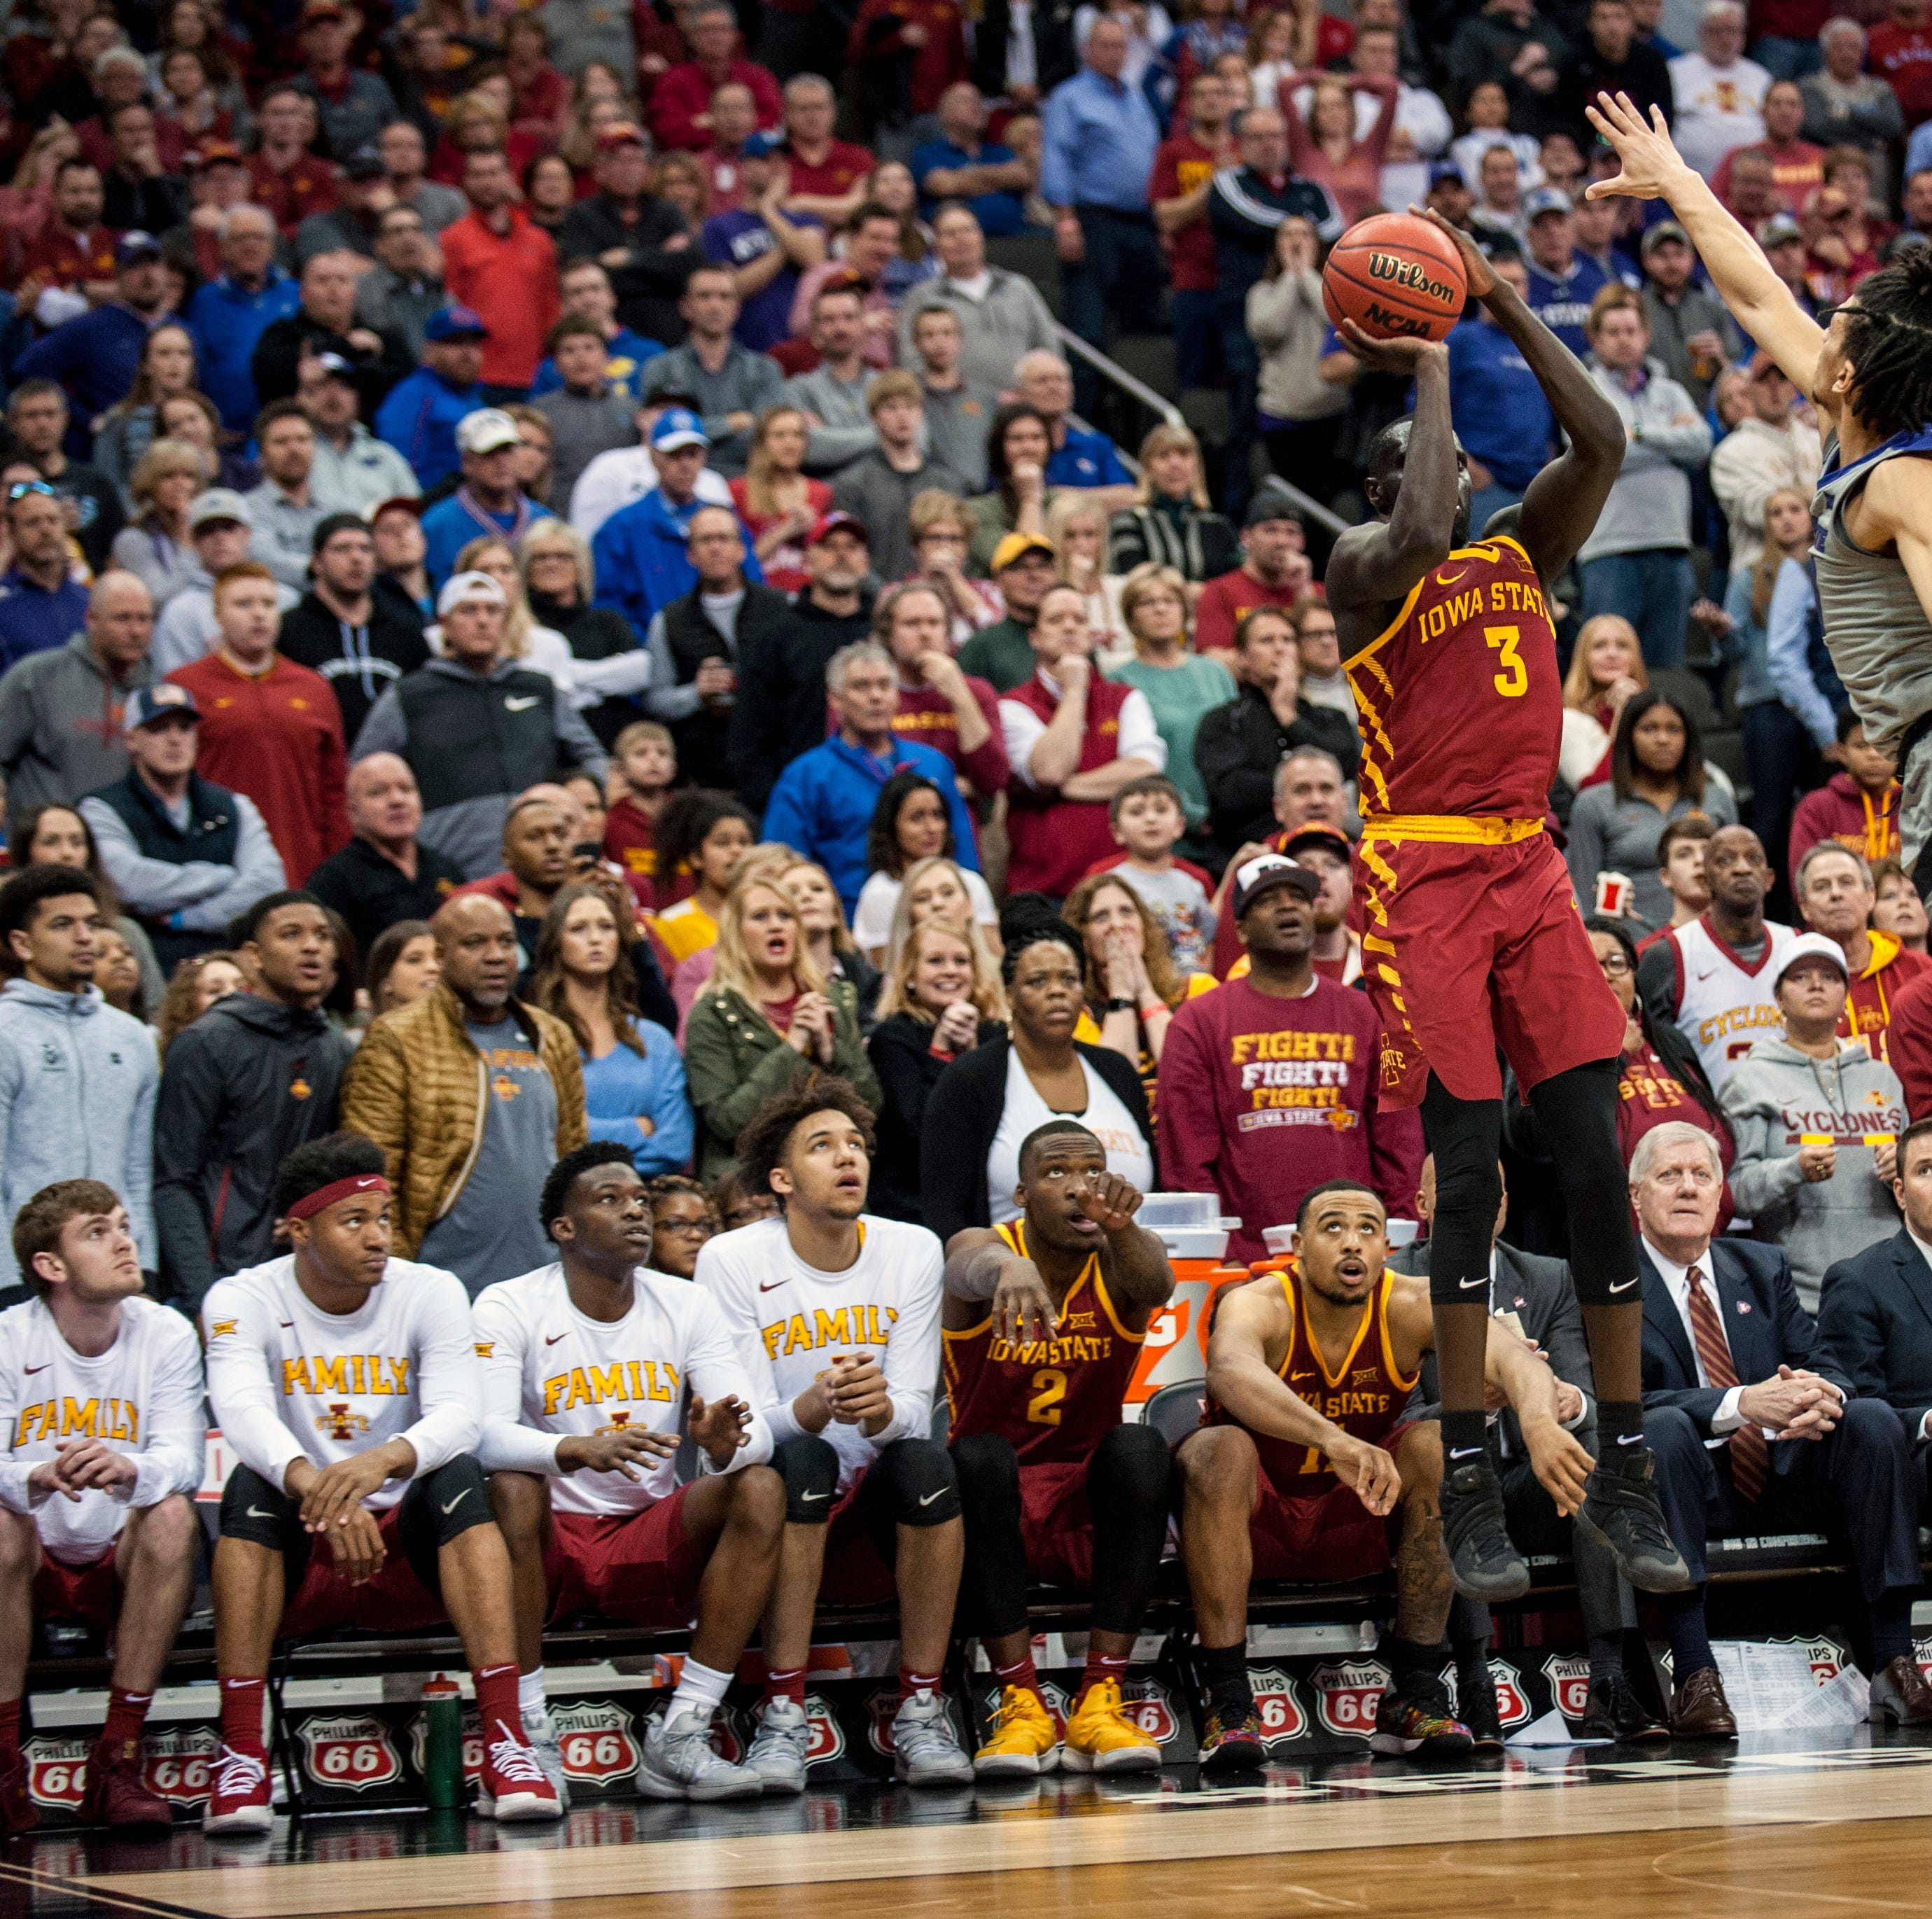 A look at Marial Shayok's two big shots that helped Iowa State to the Big 12 title game